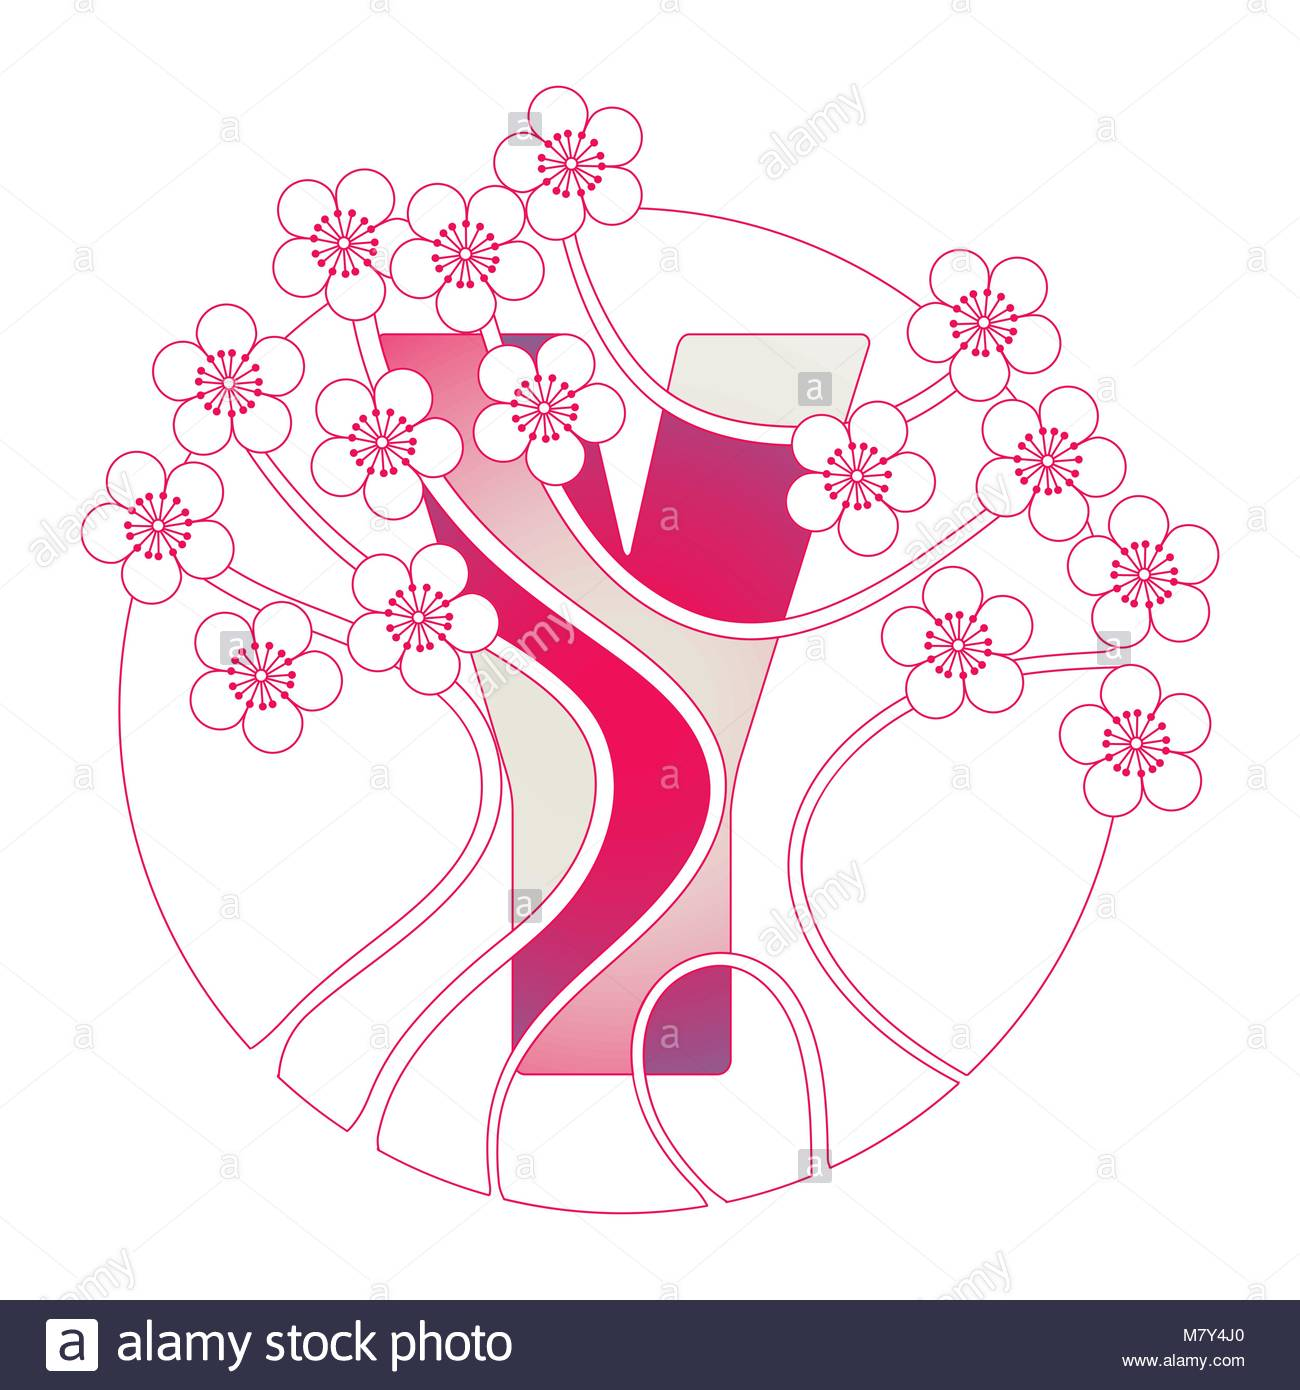 Outlined In Pink Stock Photos & Outlined In Pink Stock Images - Alamy